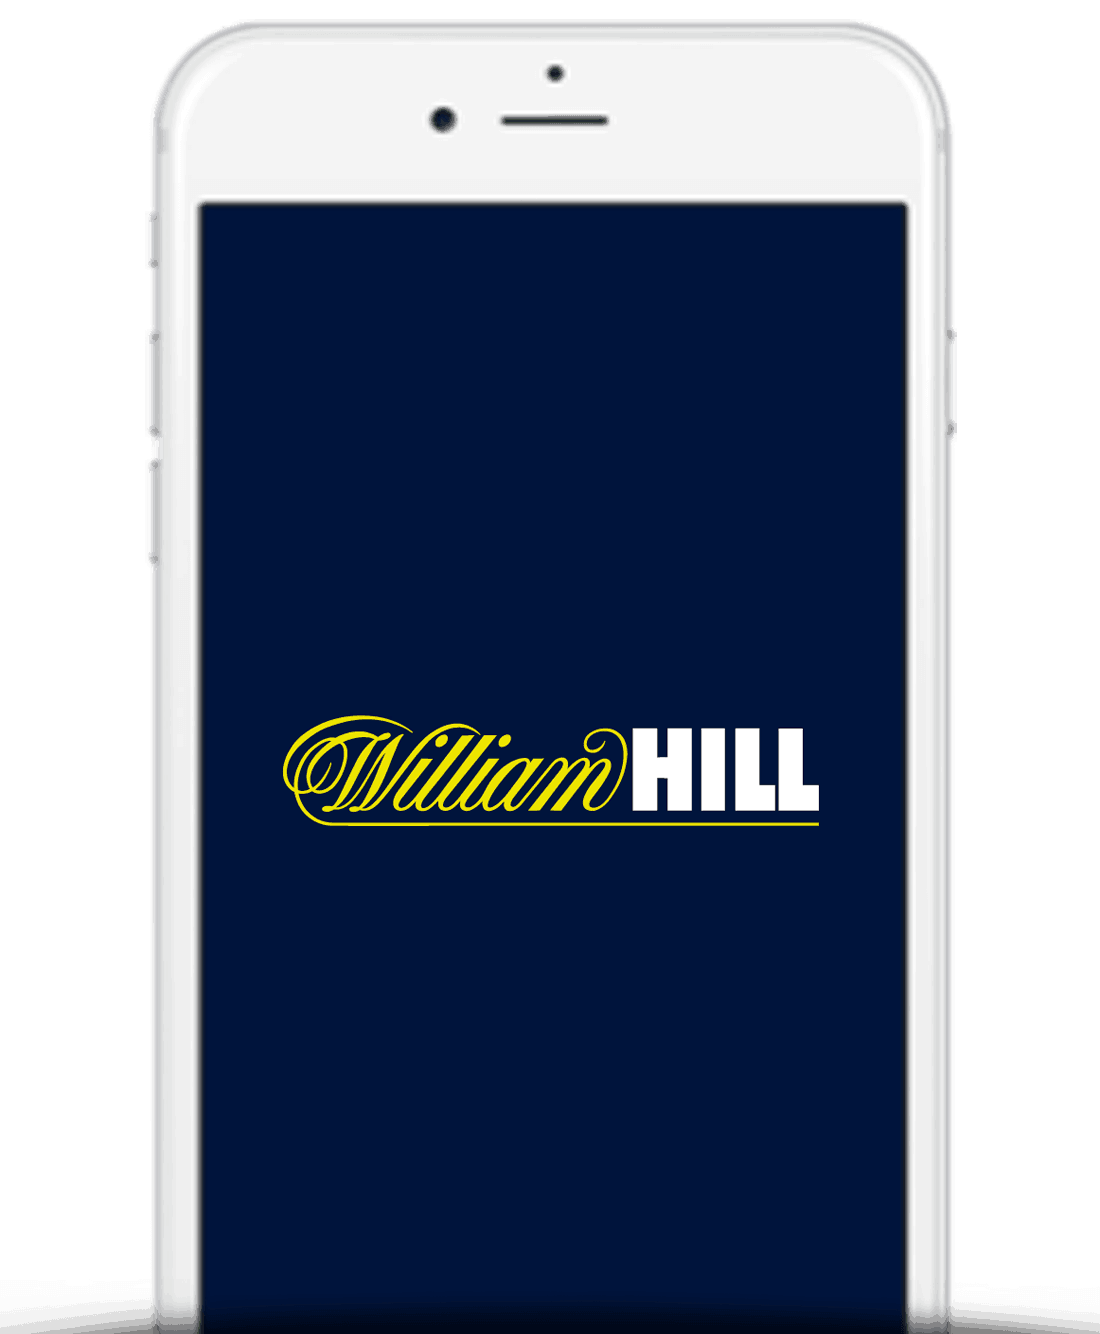 William Hill Mobile Key Features